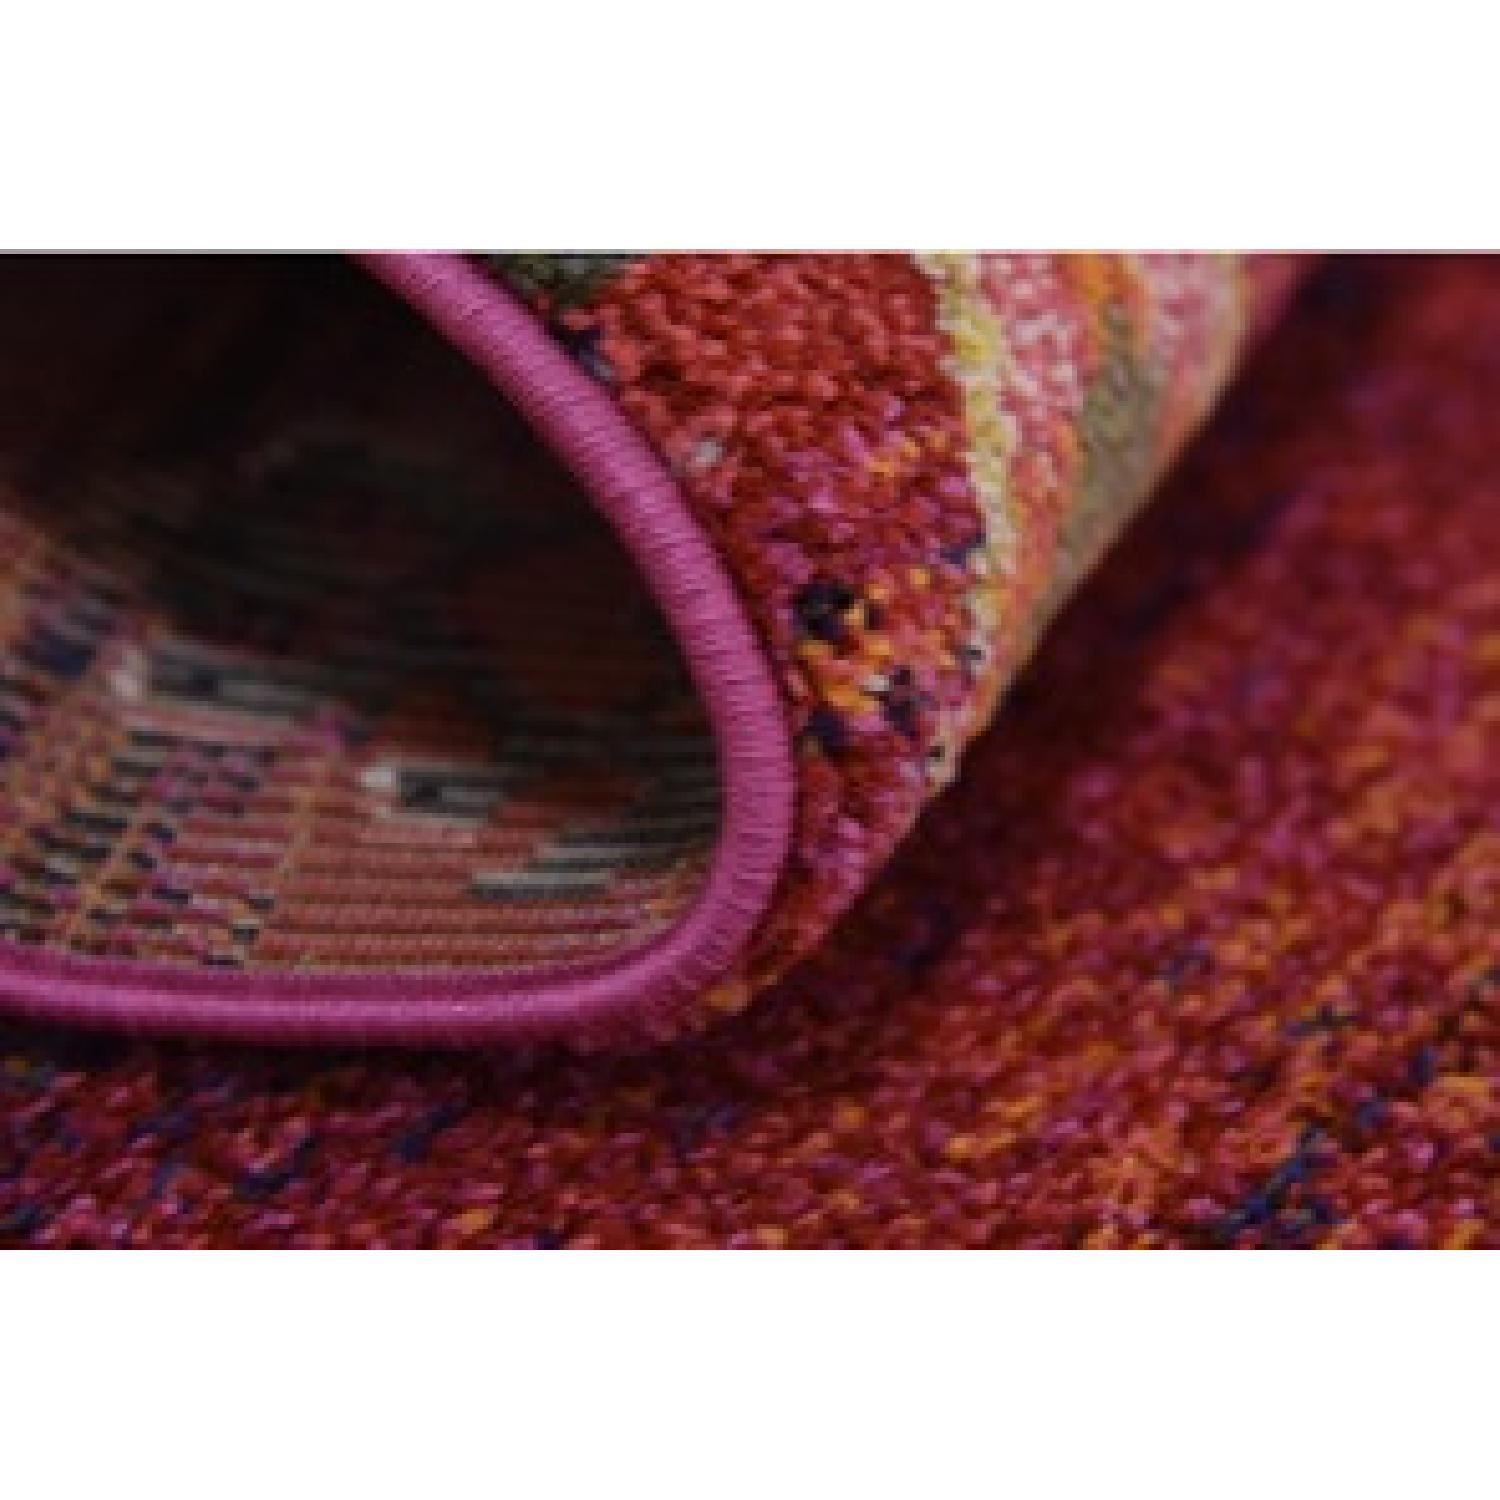 Wayfair Multicolored Red/Pink barely used Area rug - image-1